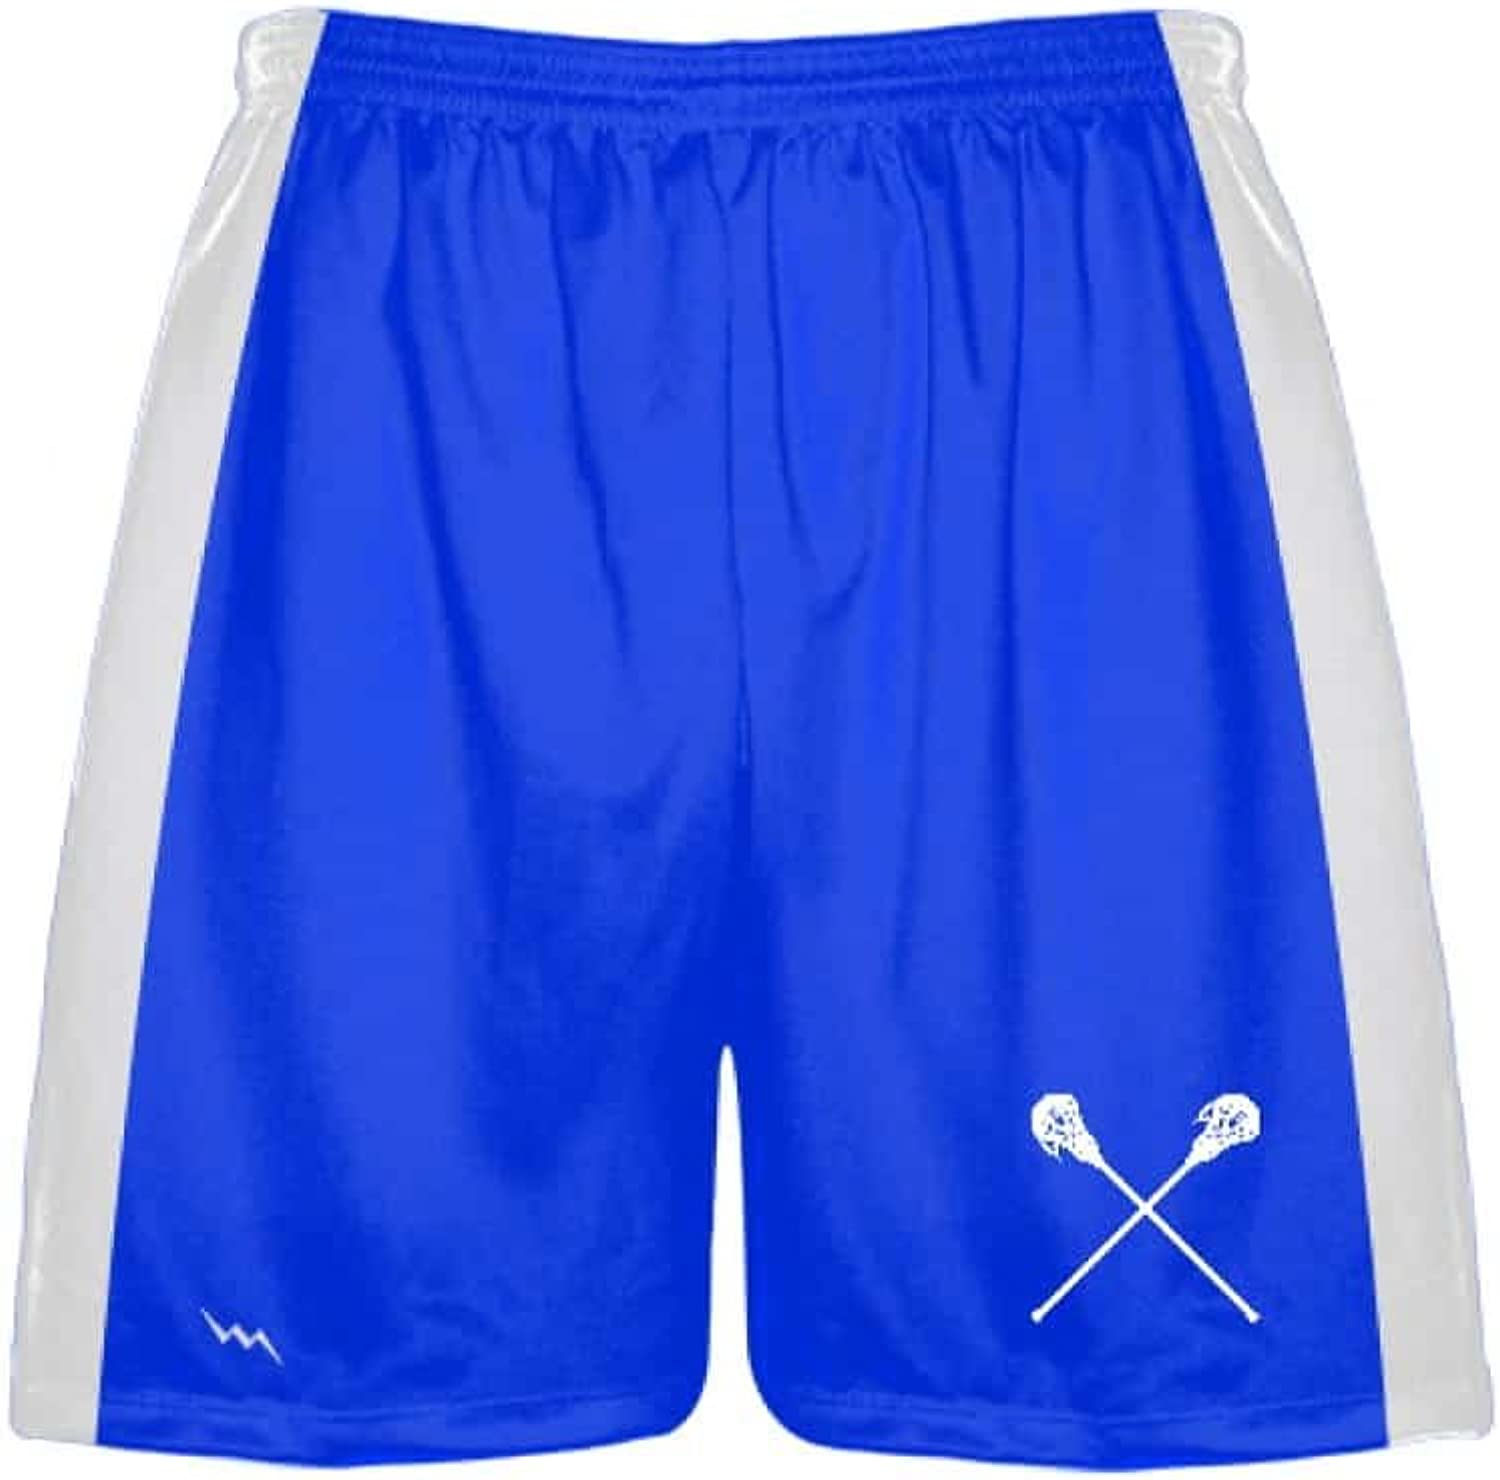 LightningWear Royal blueee Lacrosse Shorts  Mens and Boys Polyester Lacrosse Shorts  Sublimated Lax Shorts